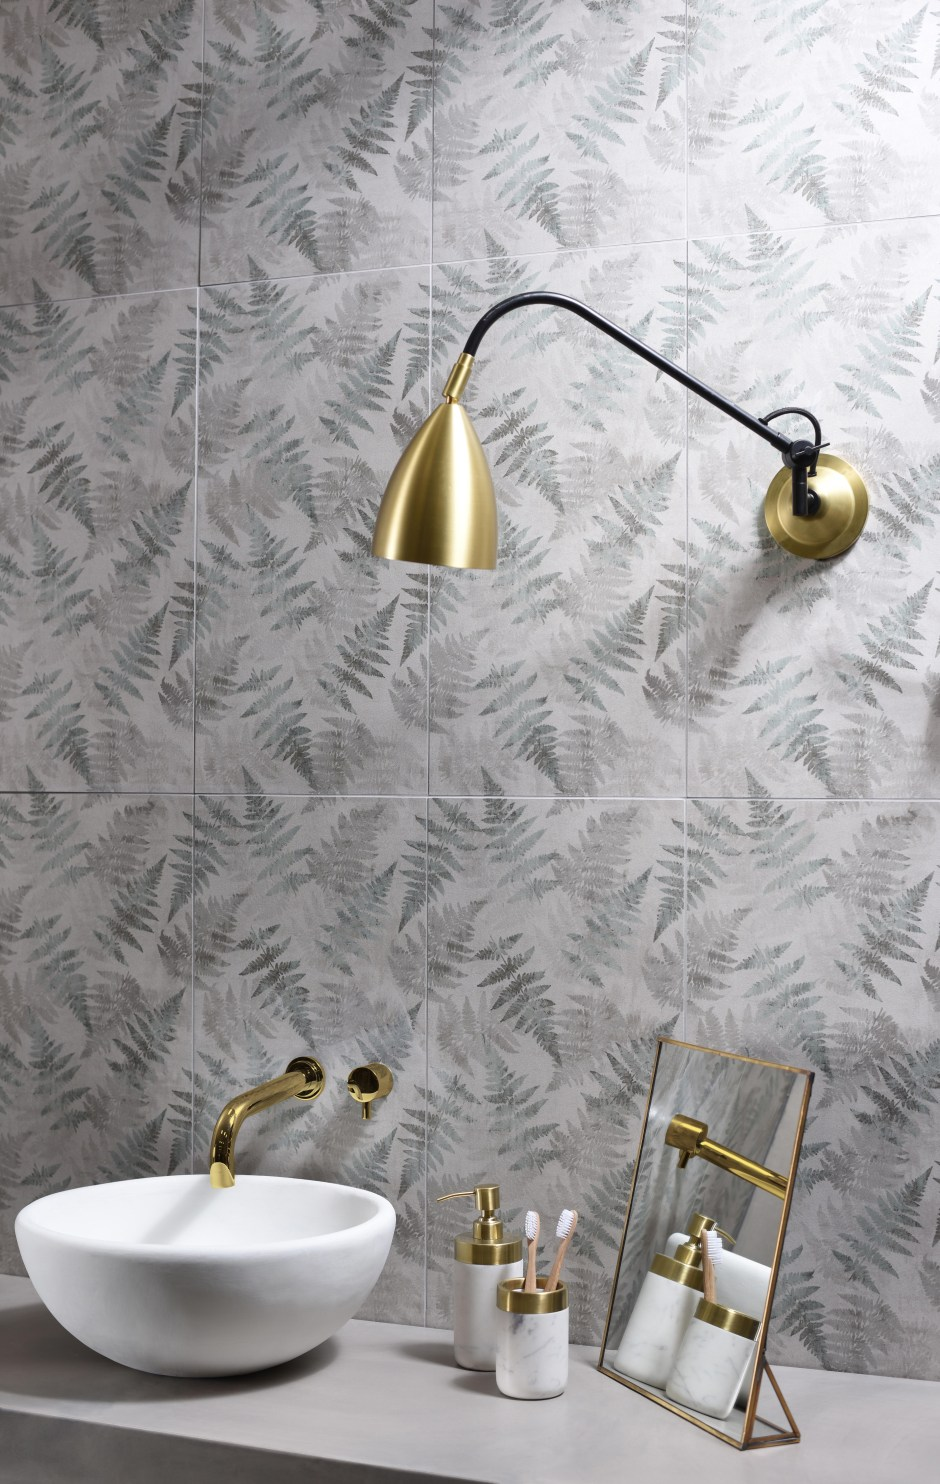 Timeless Decorative Tiles - Original Style's Capsule Collections